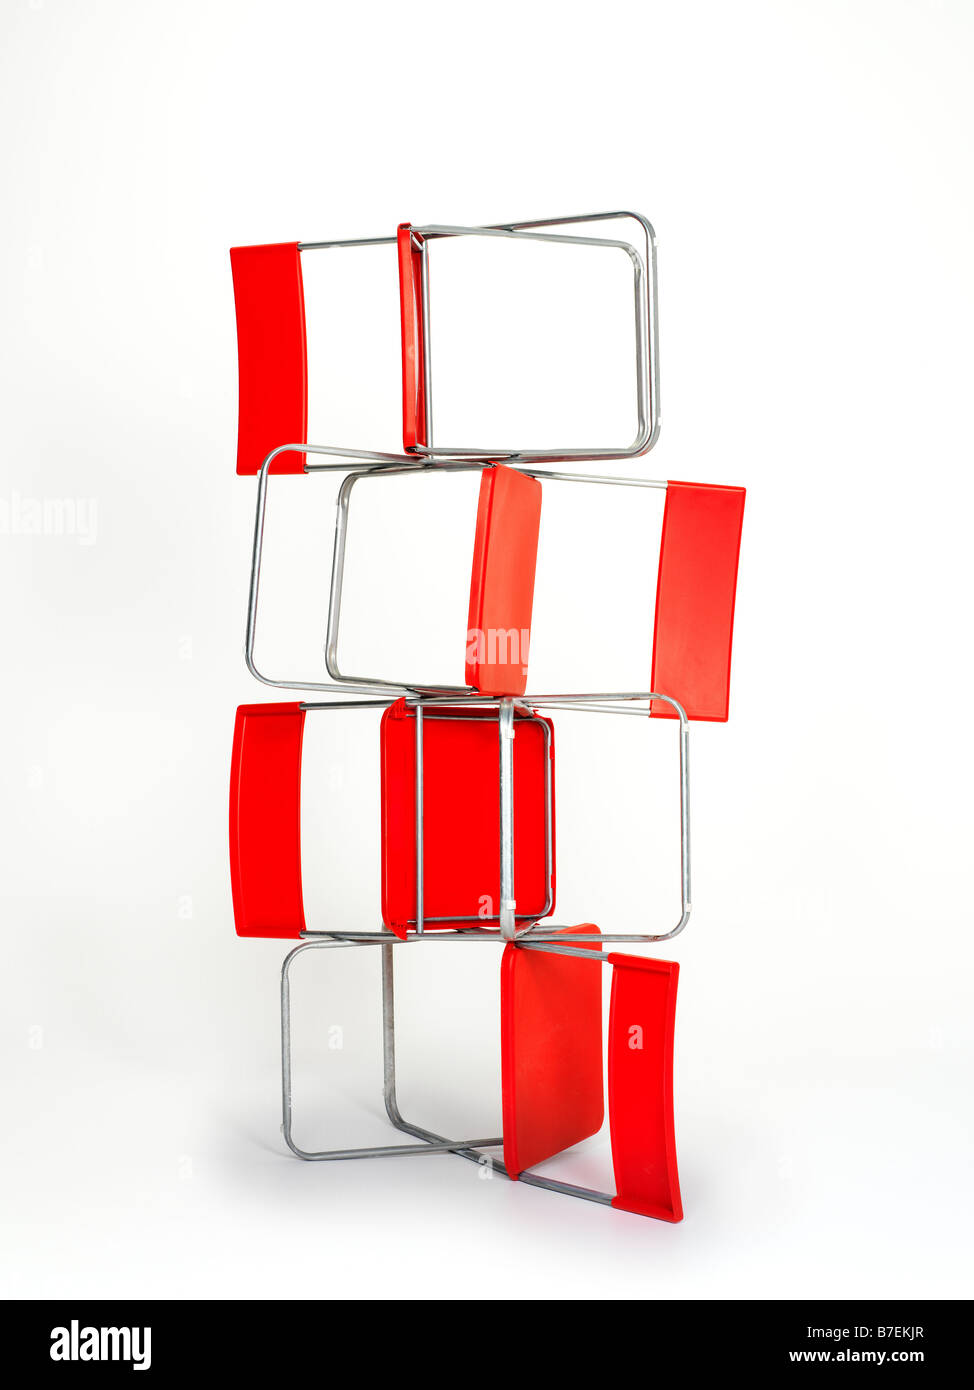 four red folding chairs on top of the other - Stock Image